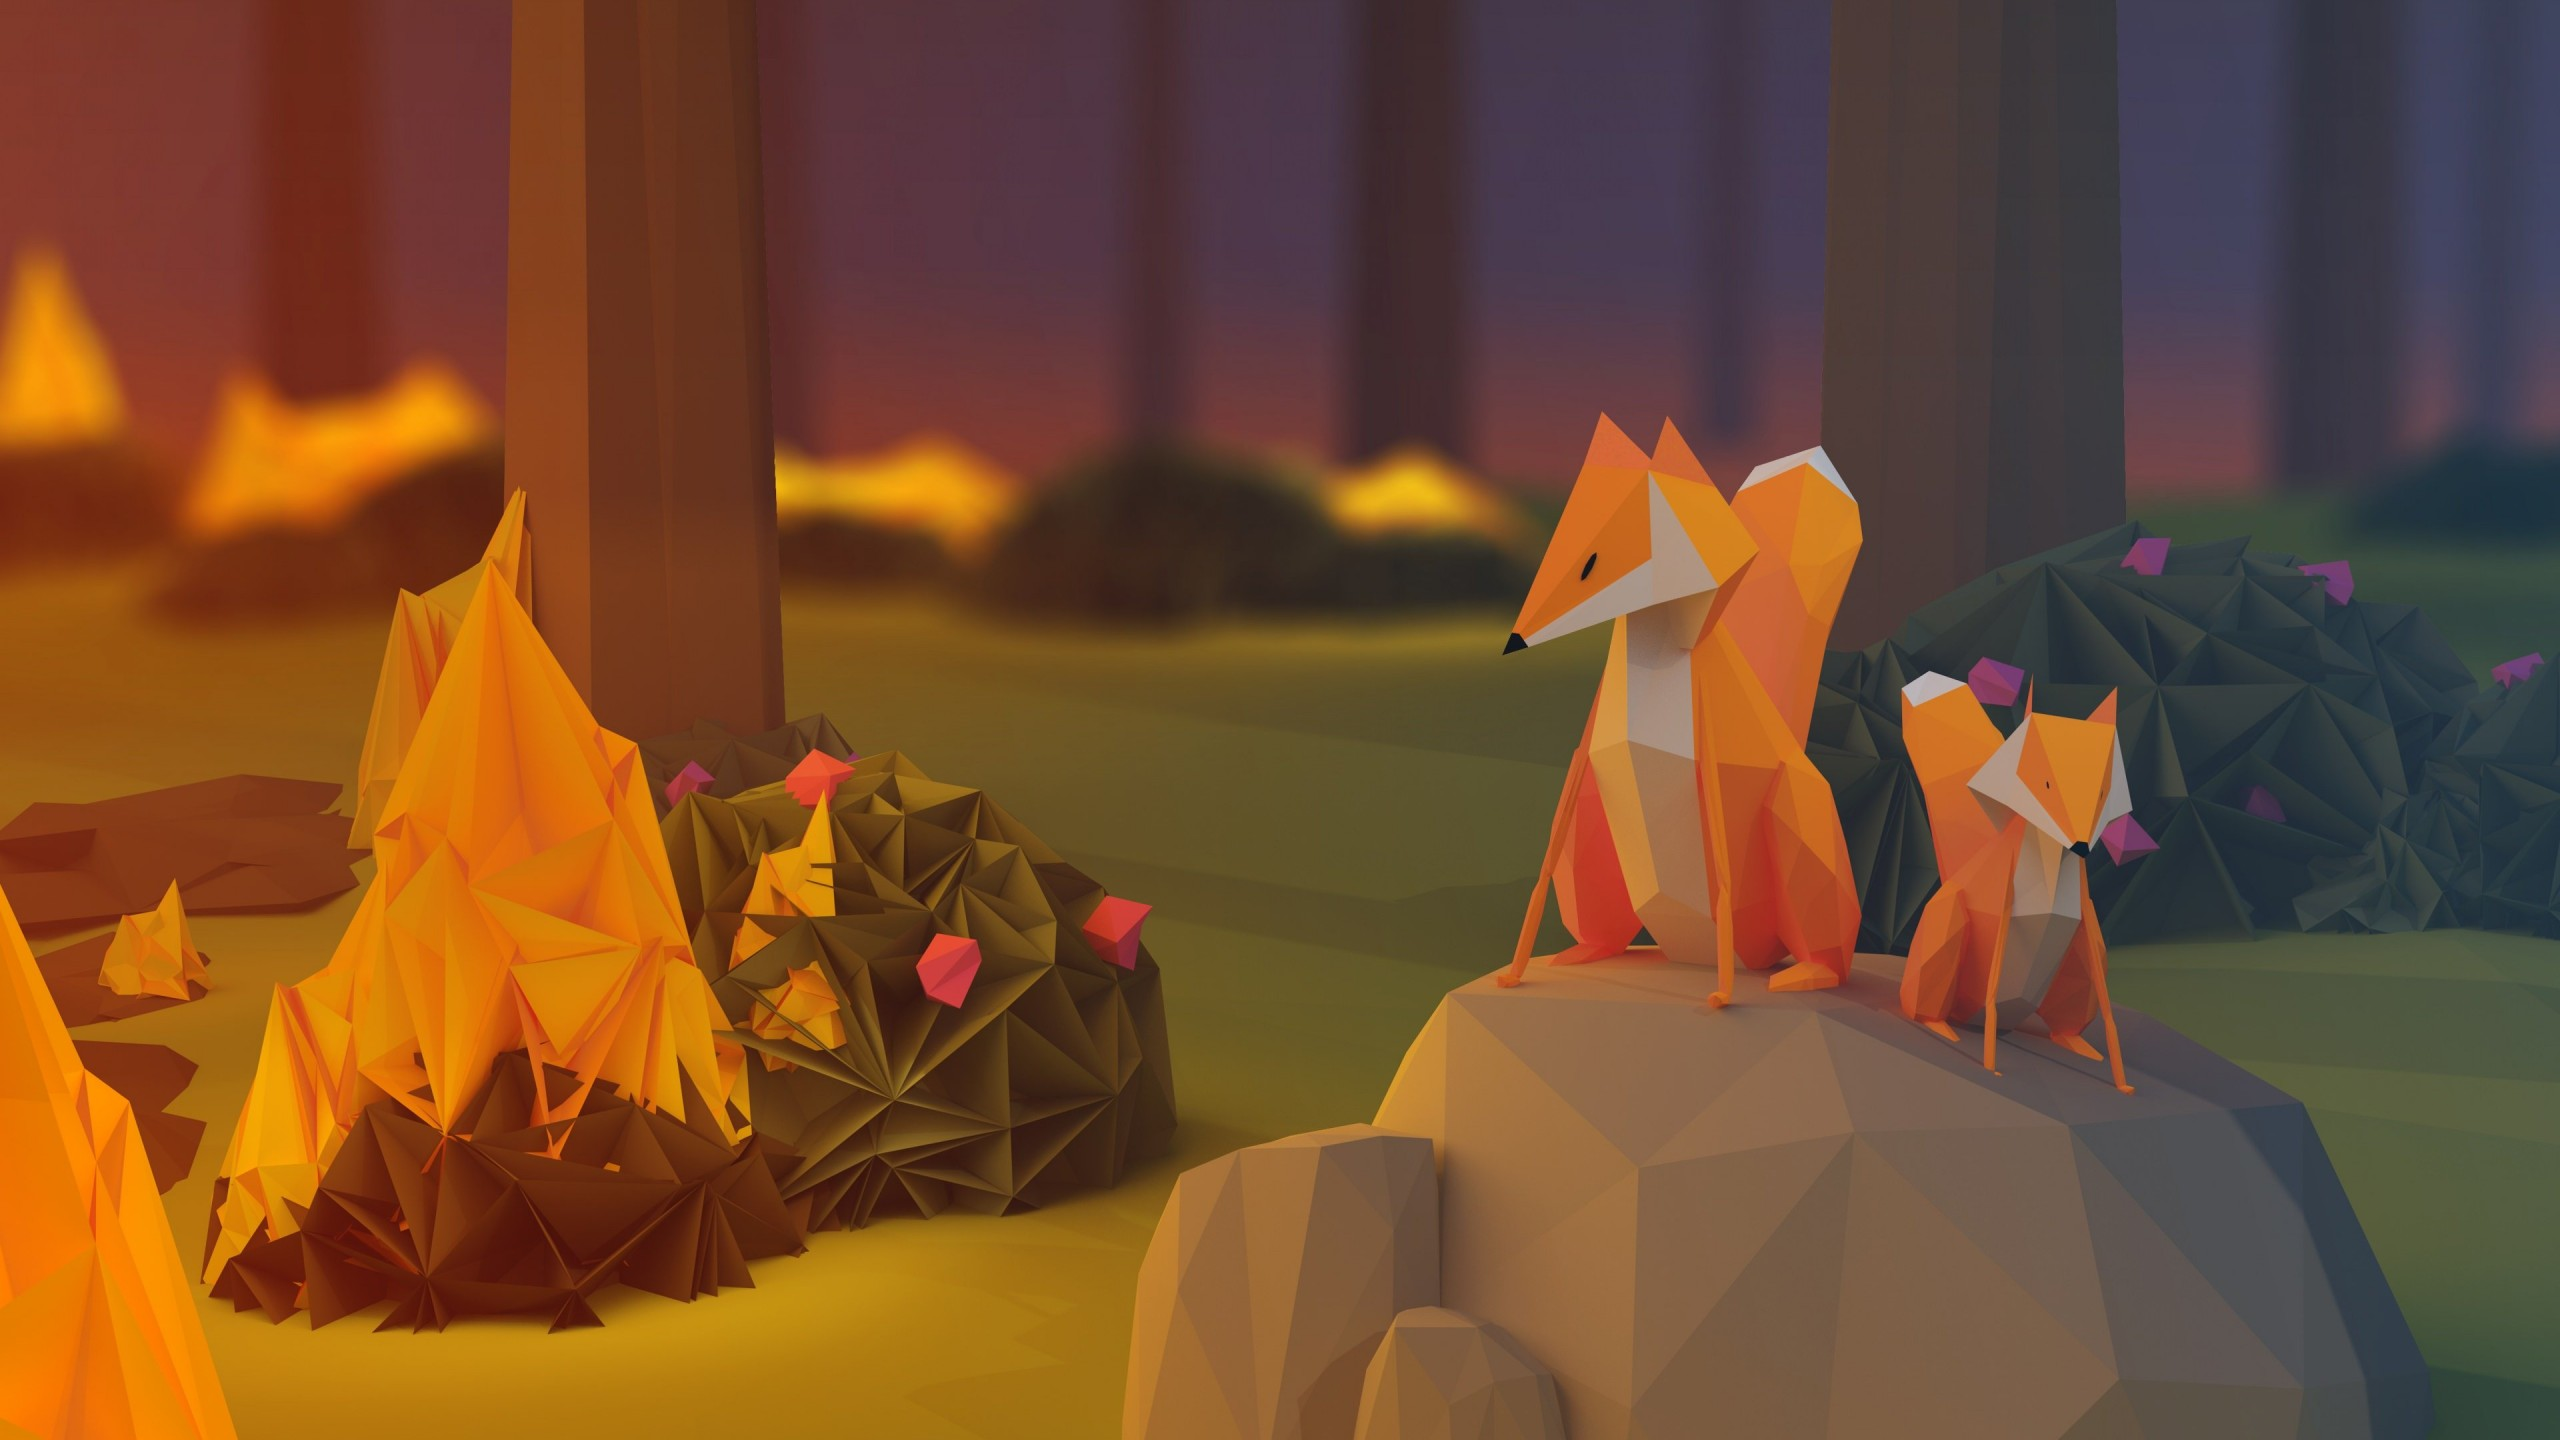 Low Poly Foxes Wallpaper for Social Media YouTube Channel Art